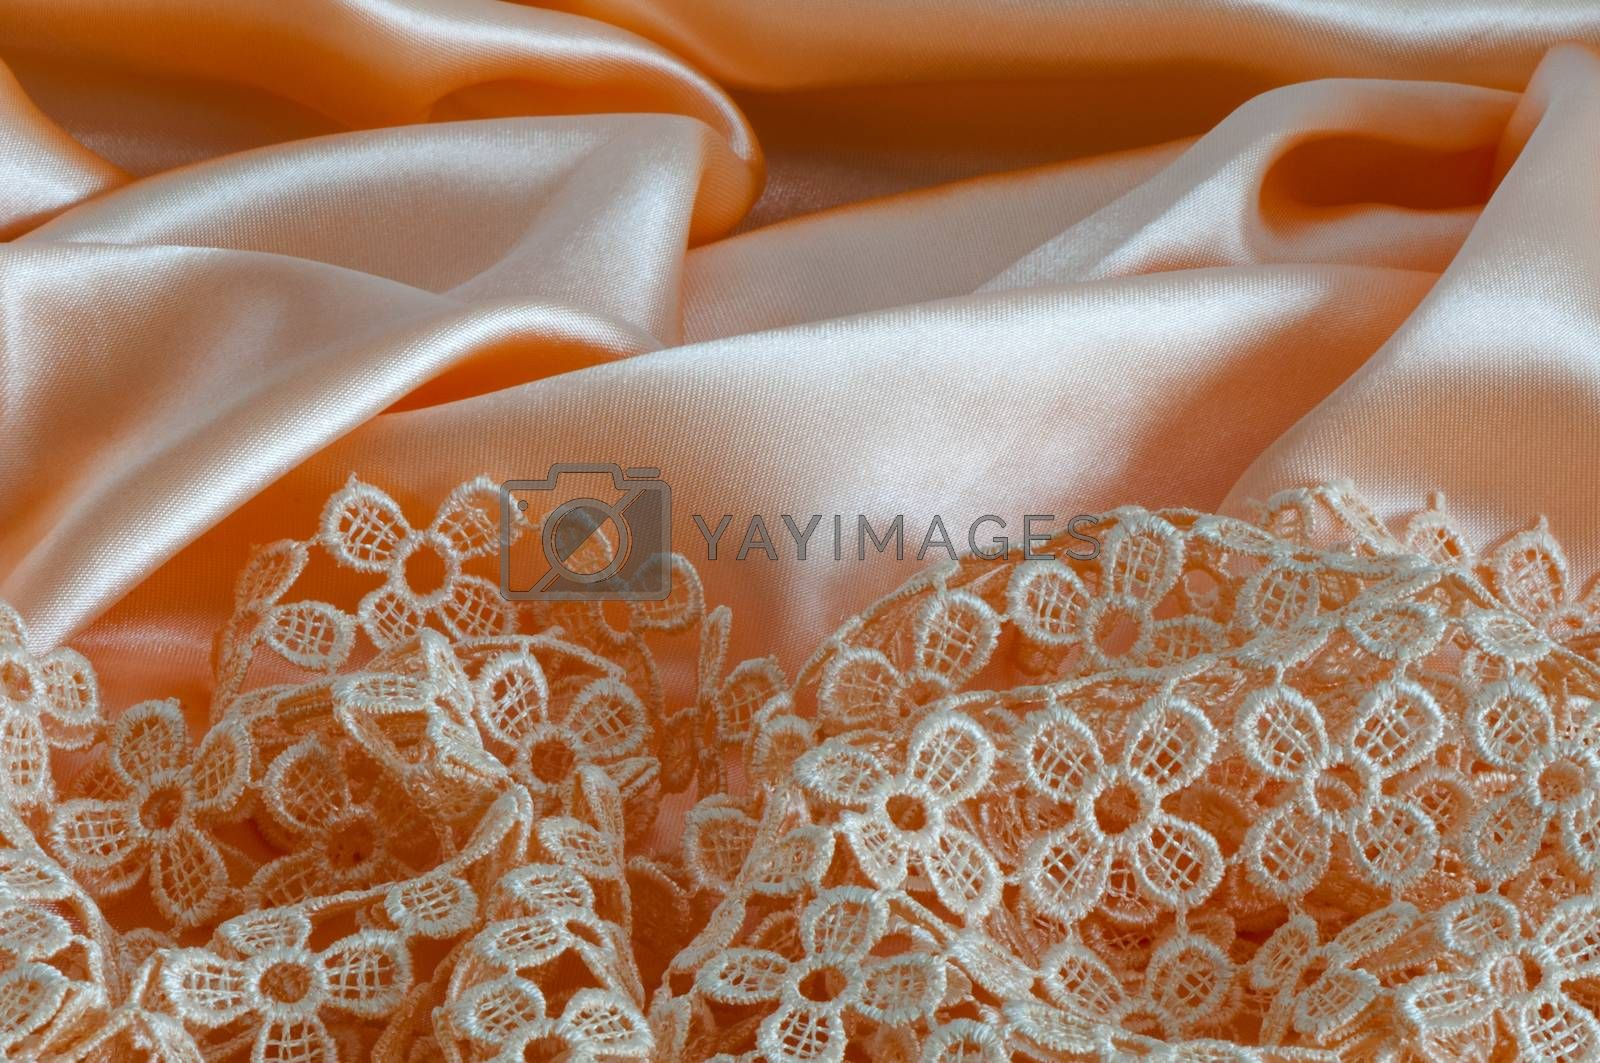 Royalty free image of  a background fabric  by carla720